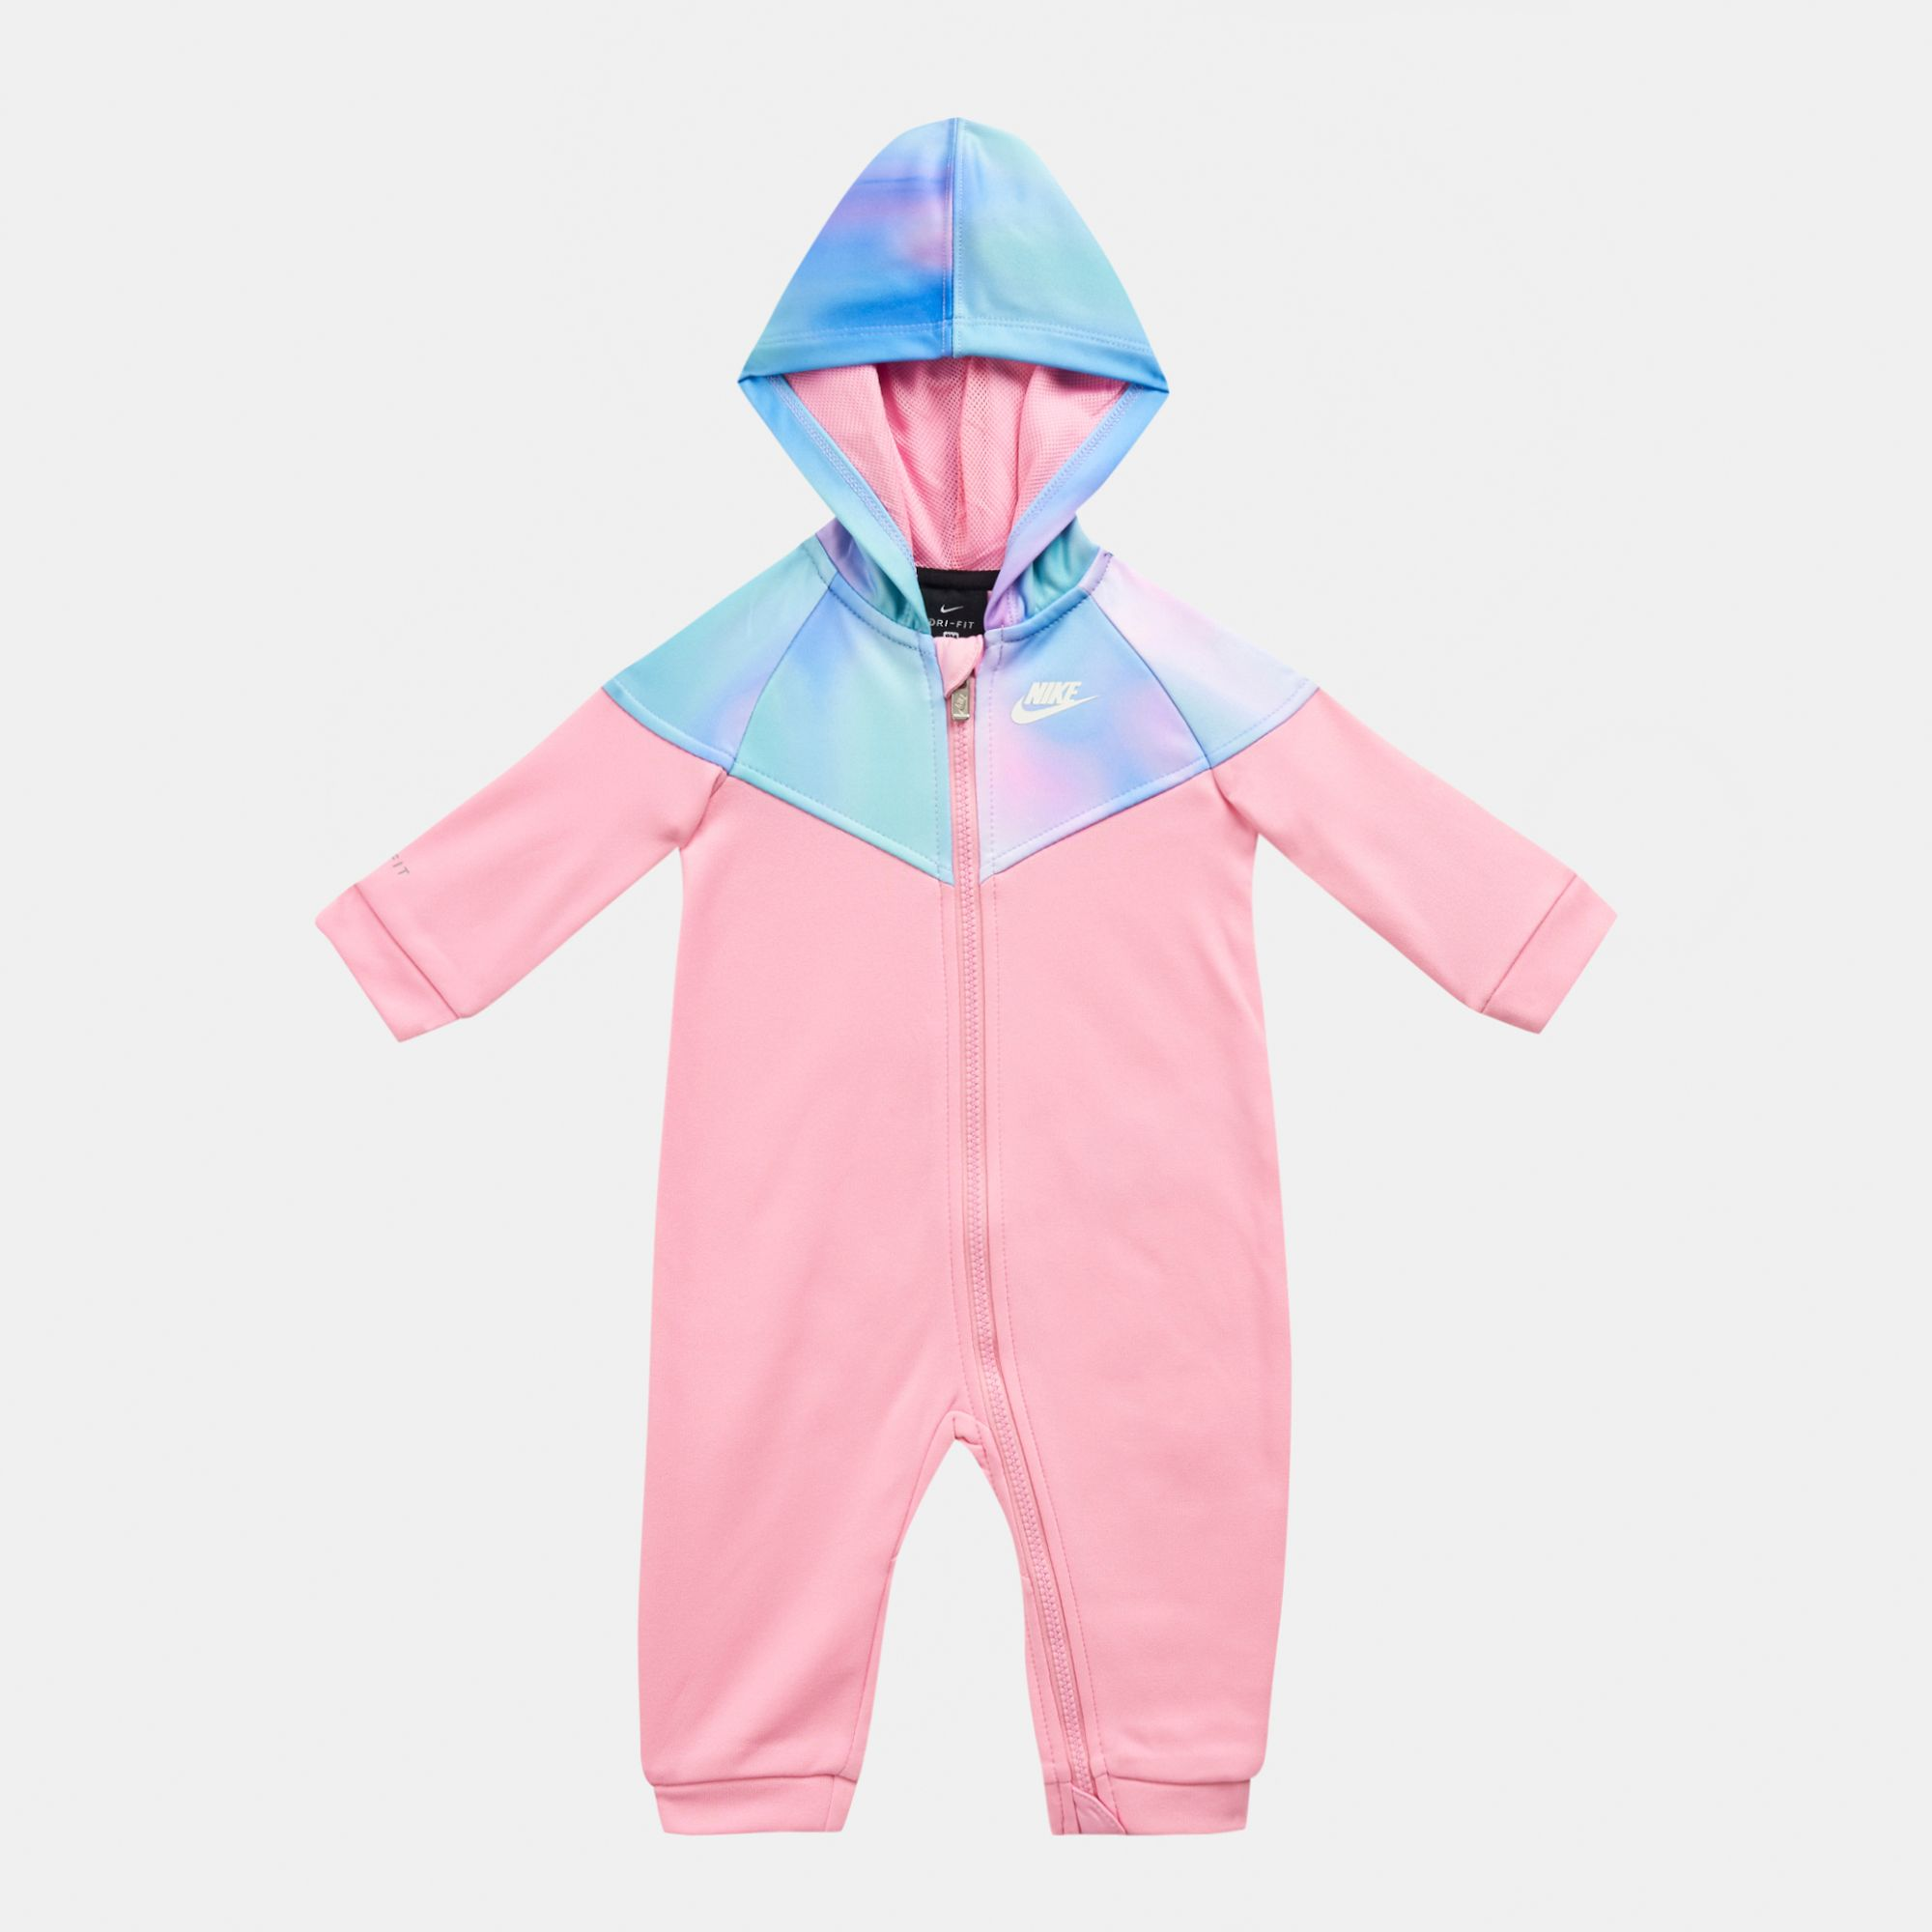 180d2947ae Nike Kids' Unicorn Therma Coverall (Baby and Toddler) | Tracksuits ...